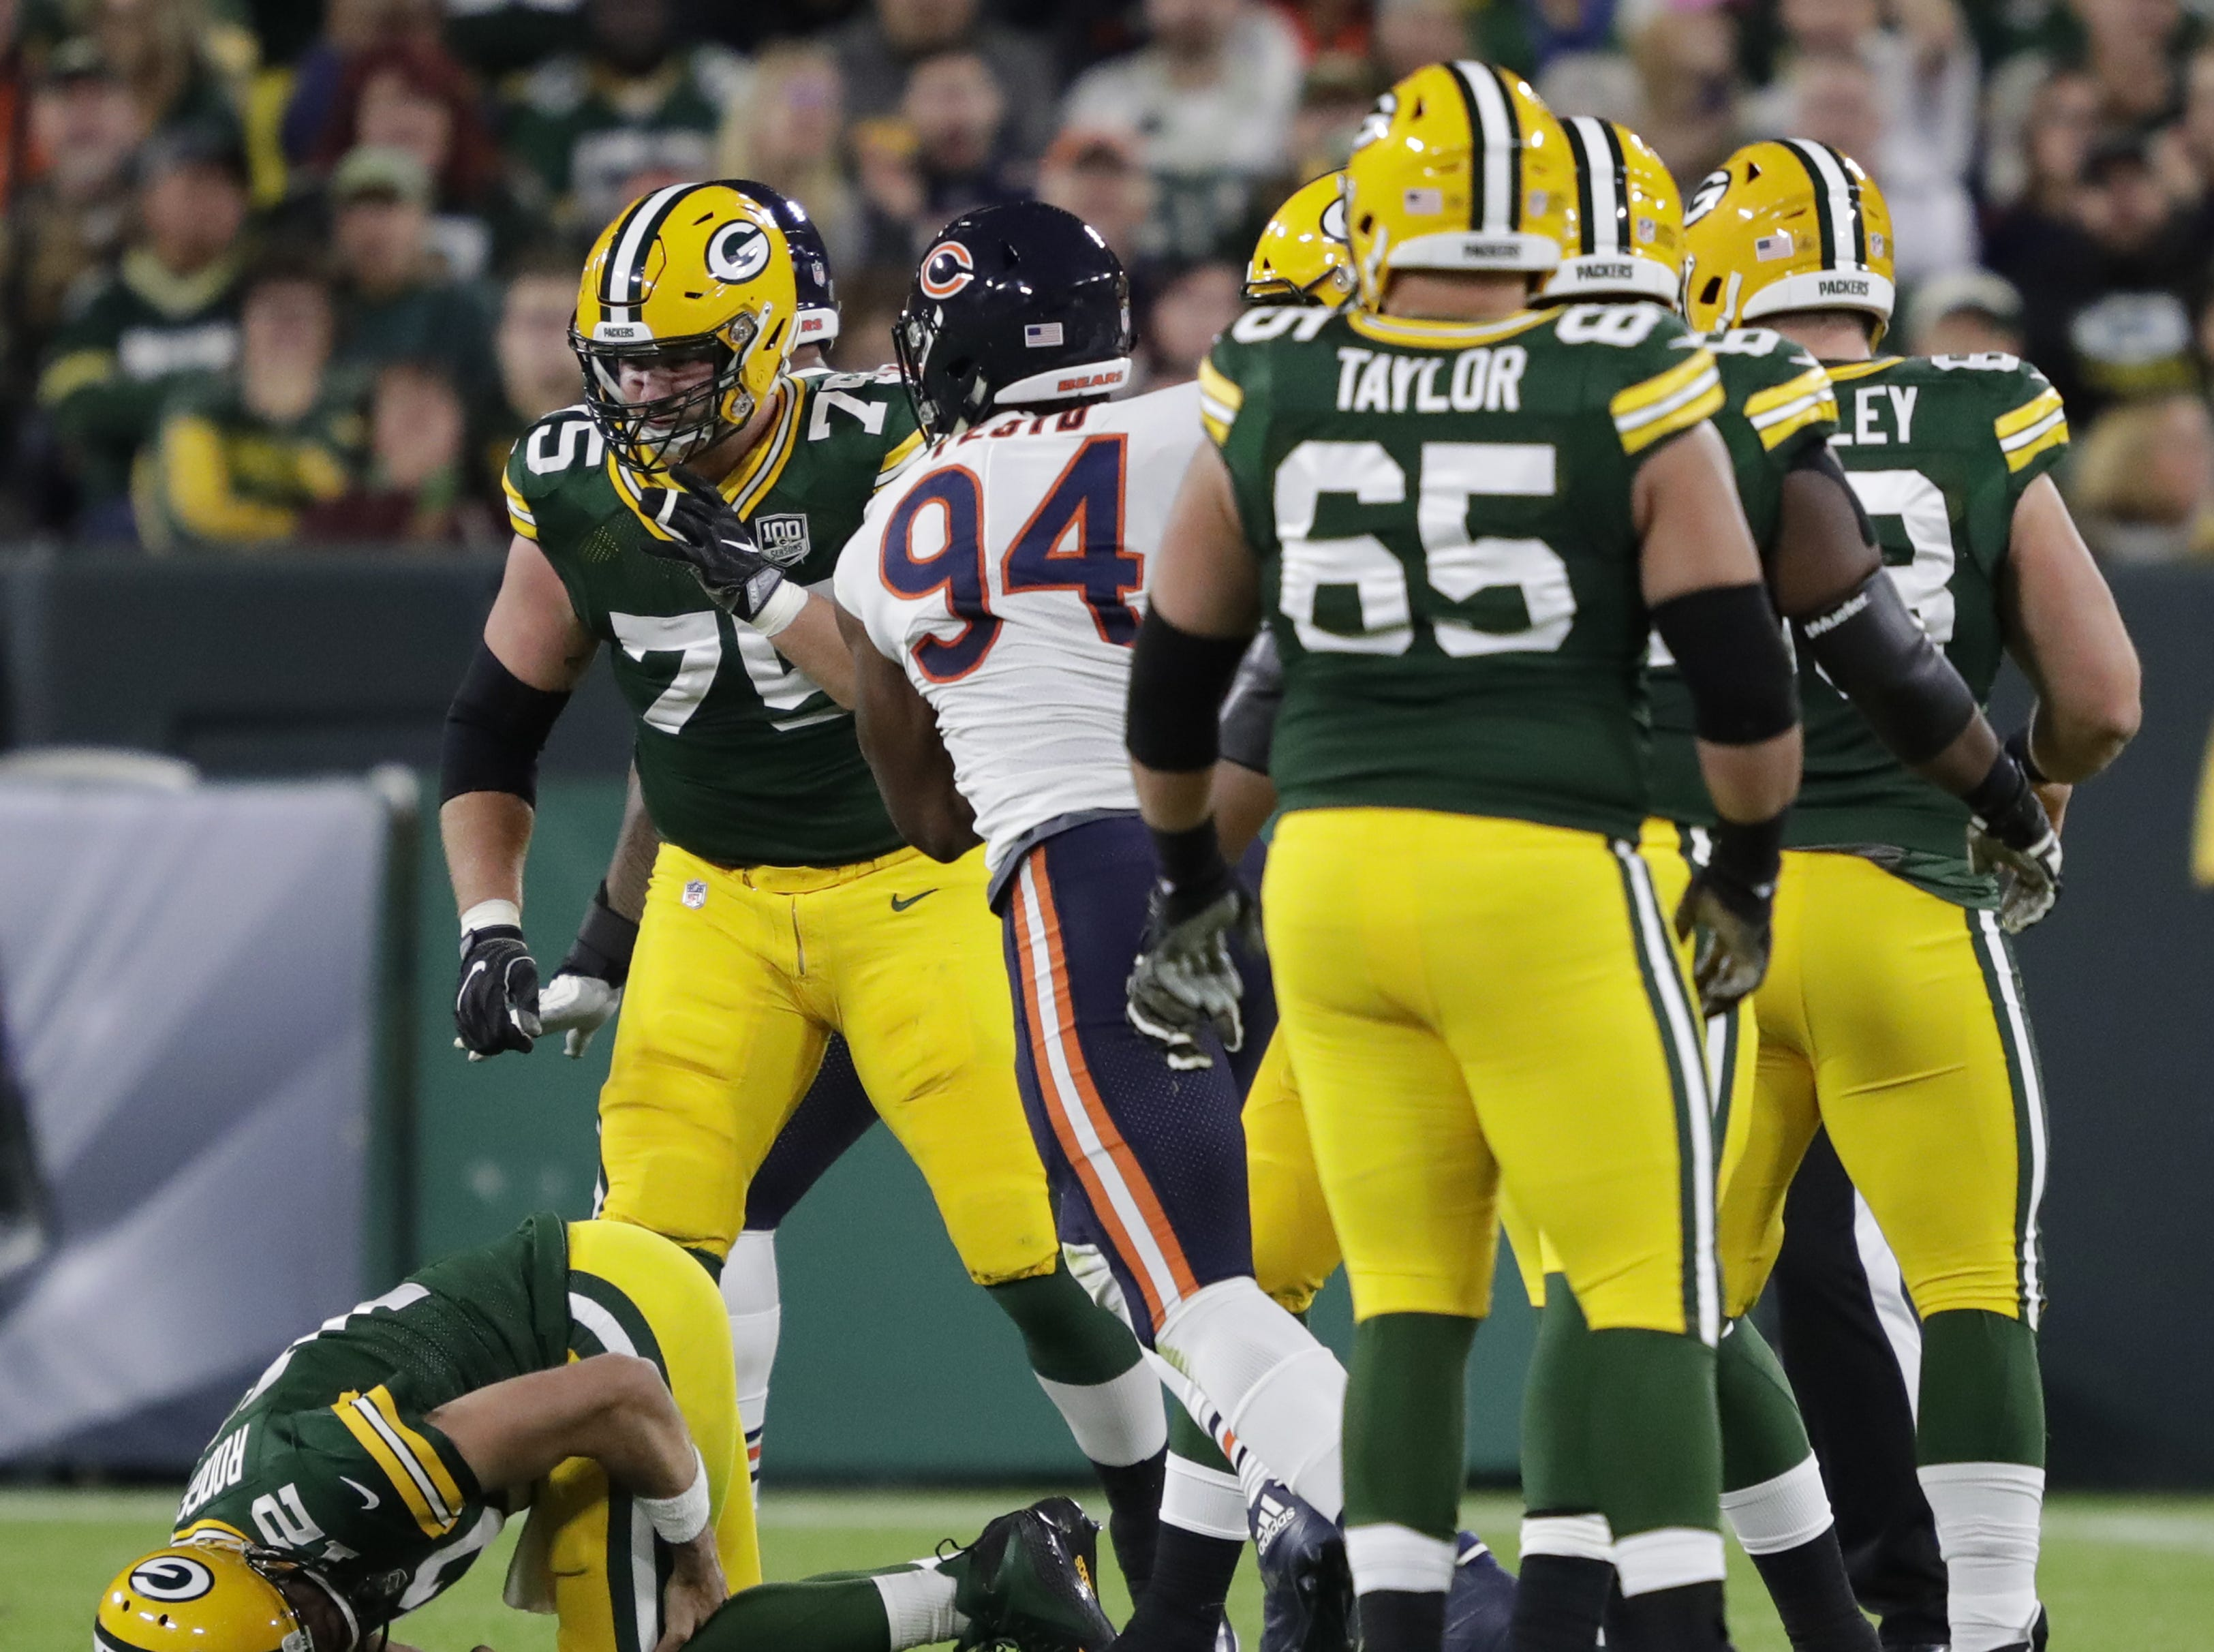 Green Bay Packers quarterback Aaron Rodgers (12) is injured during the second quarter against the Chicago Bears Sunday, Sept. 9, 2018, at Lambeau Field in Green Bay, Wis.